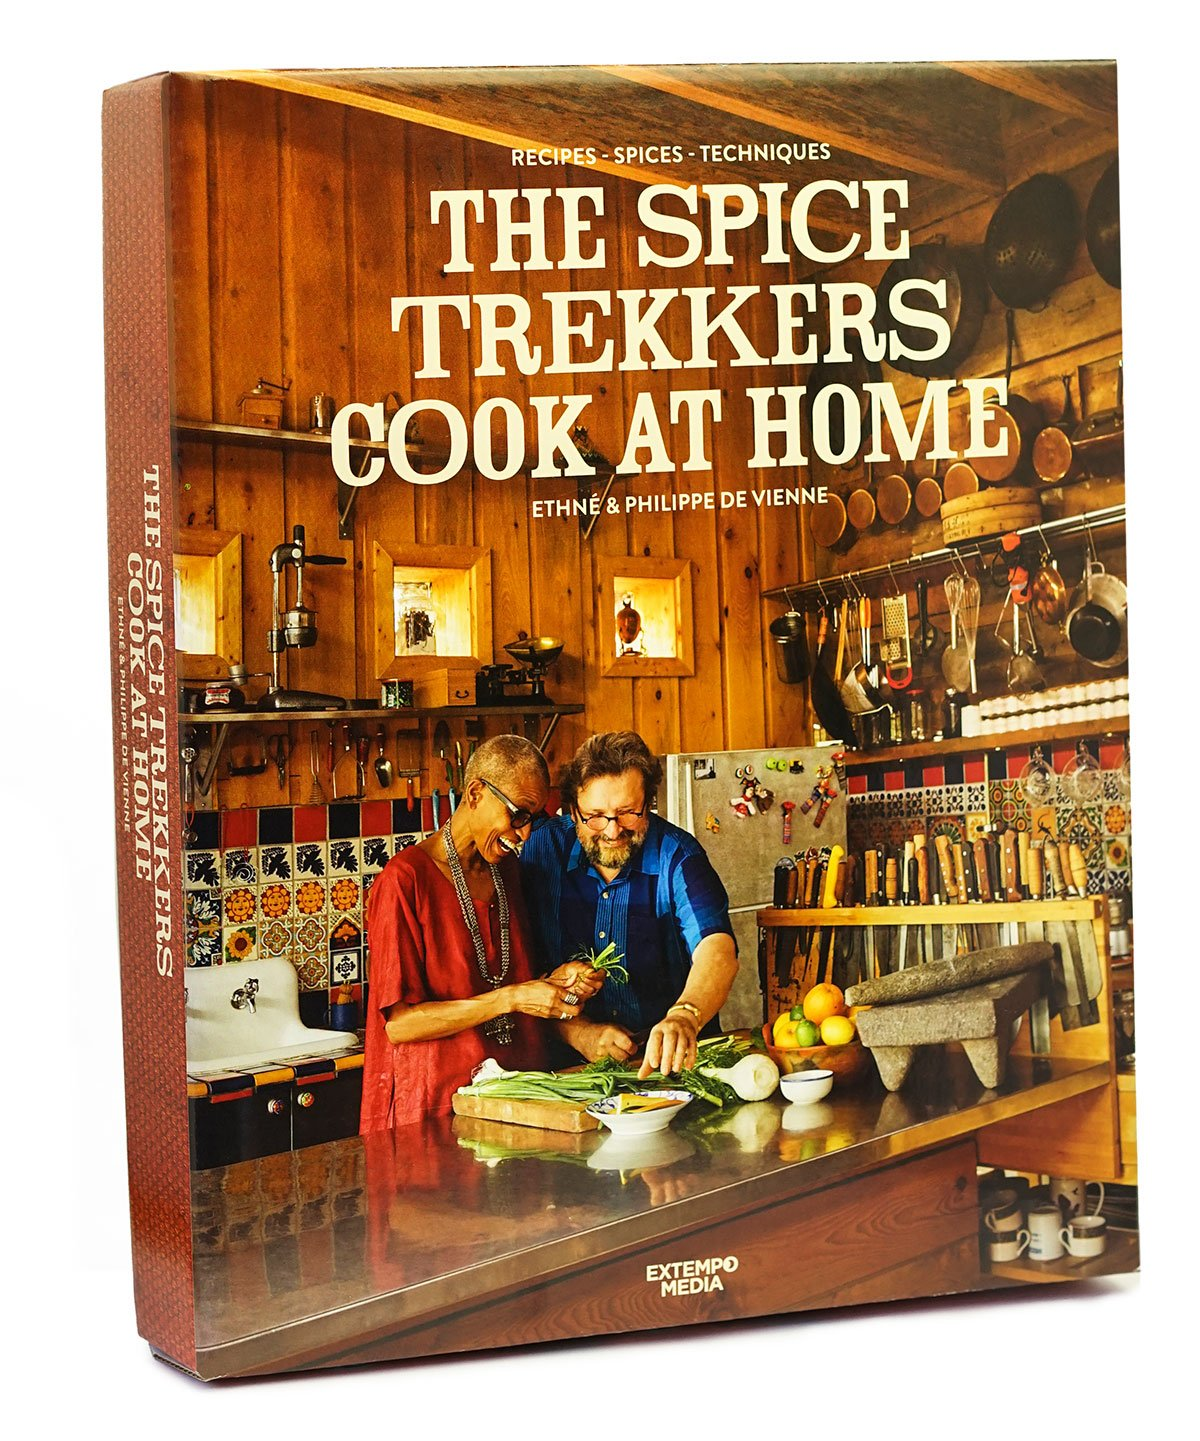 The Spice Trekkers Cook at Home Cookbook Cover